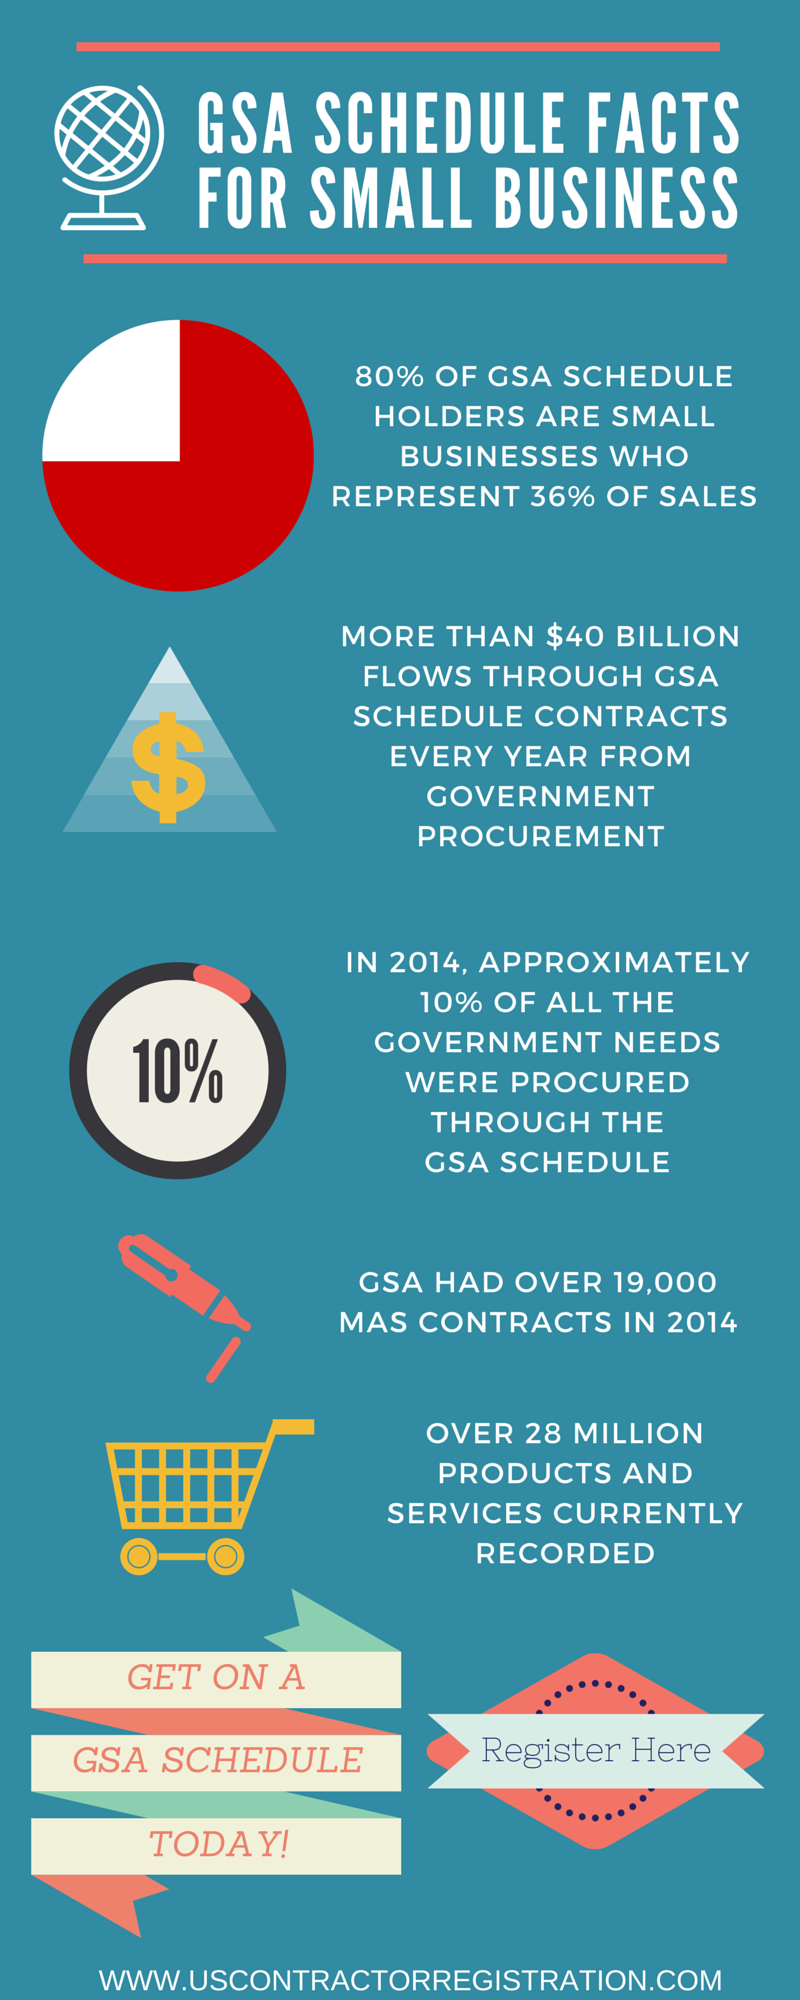 GSA SCHEDULE FACTS FOR SMALL BUSINESSES INFOGRAPHIC